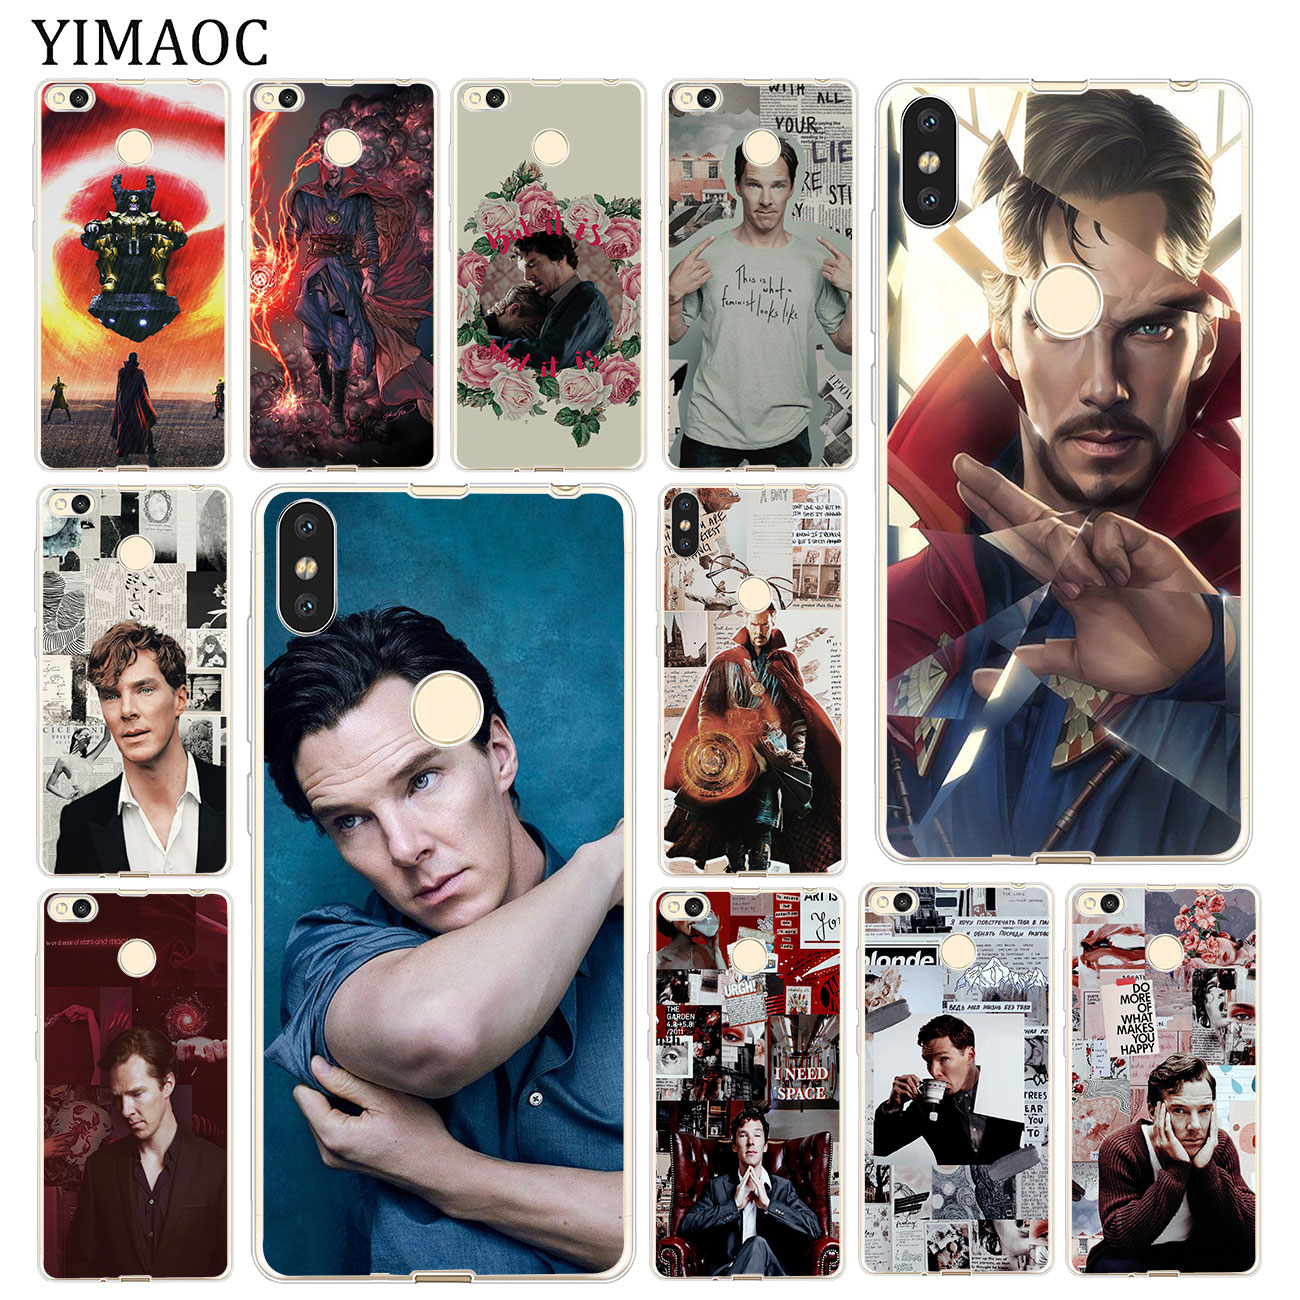 Fitted Cases Phone Bags & Cases Doctor Strange Benedict Cumberbatch Soft Case For Xiaomi Mi Redmi S2 6a 4a Note 7 5 6 Pro Plus 5a Prime 4 4x Cover Pure Whiteness